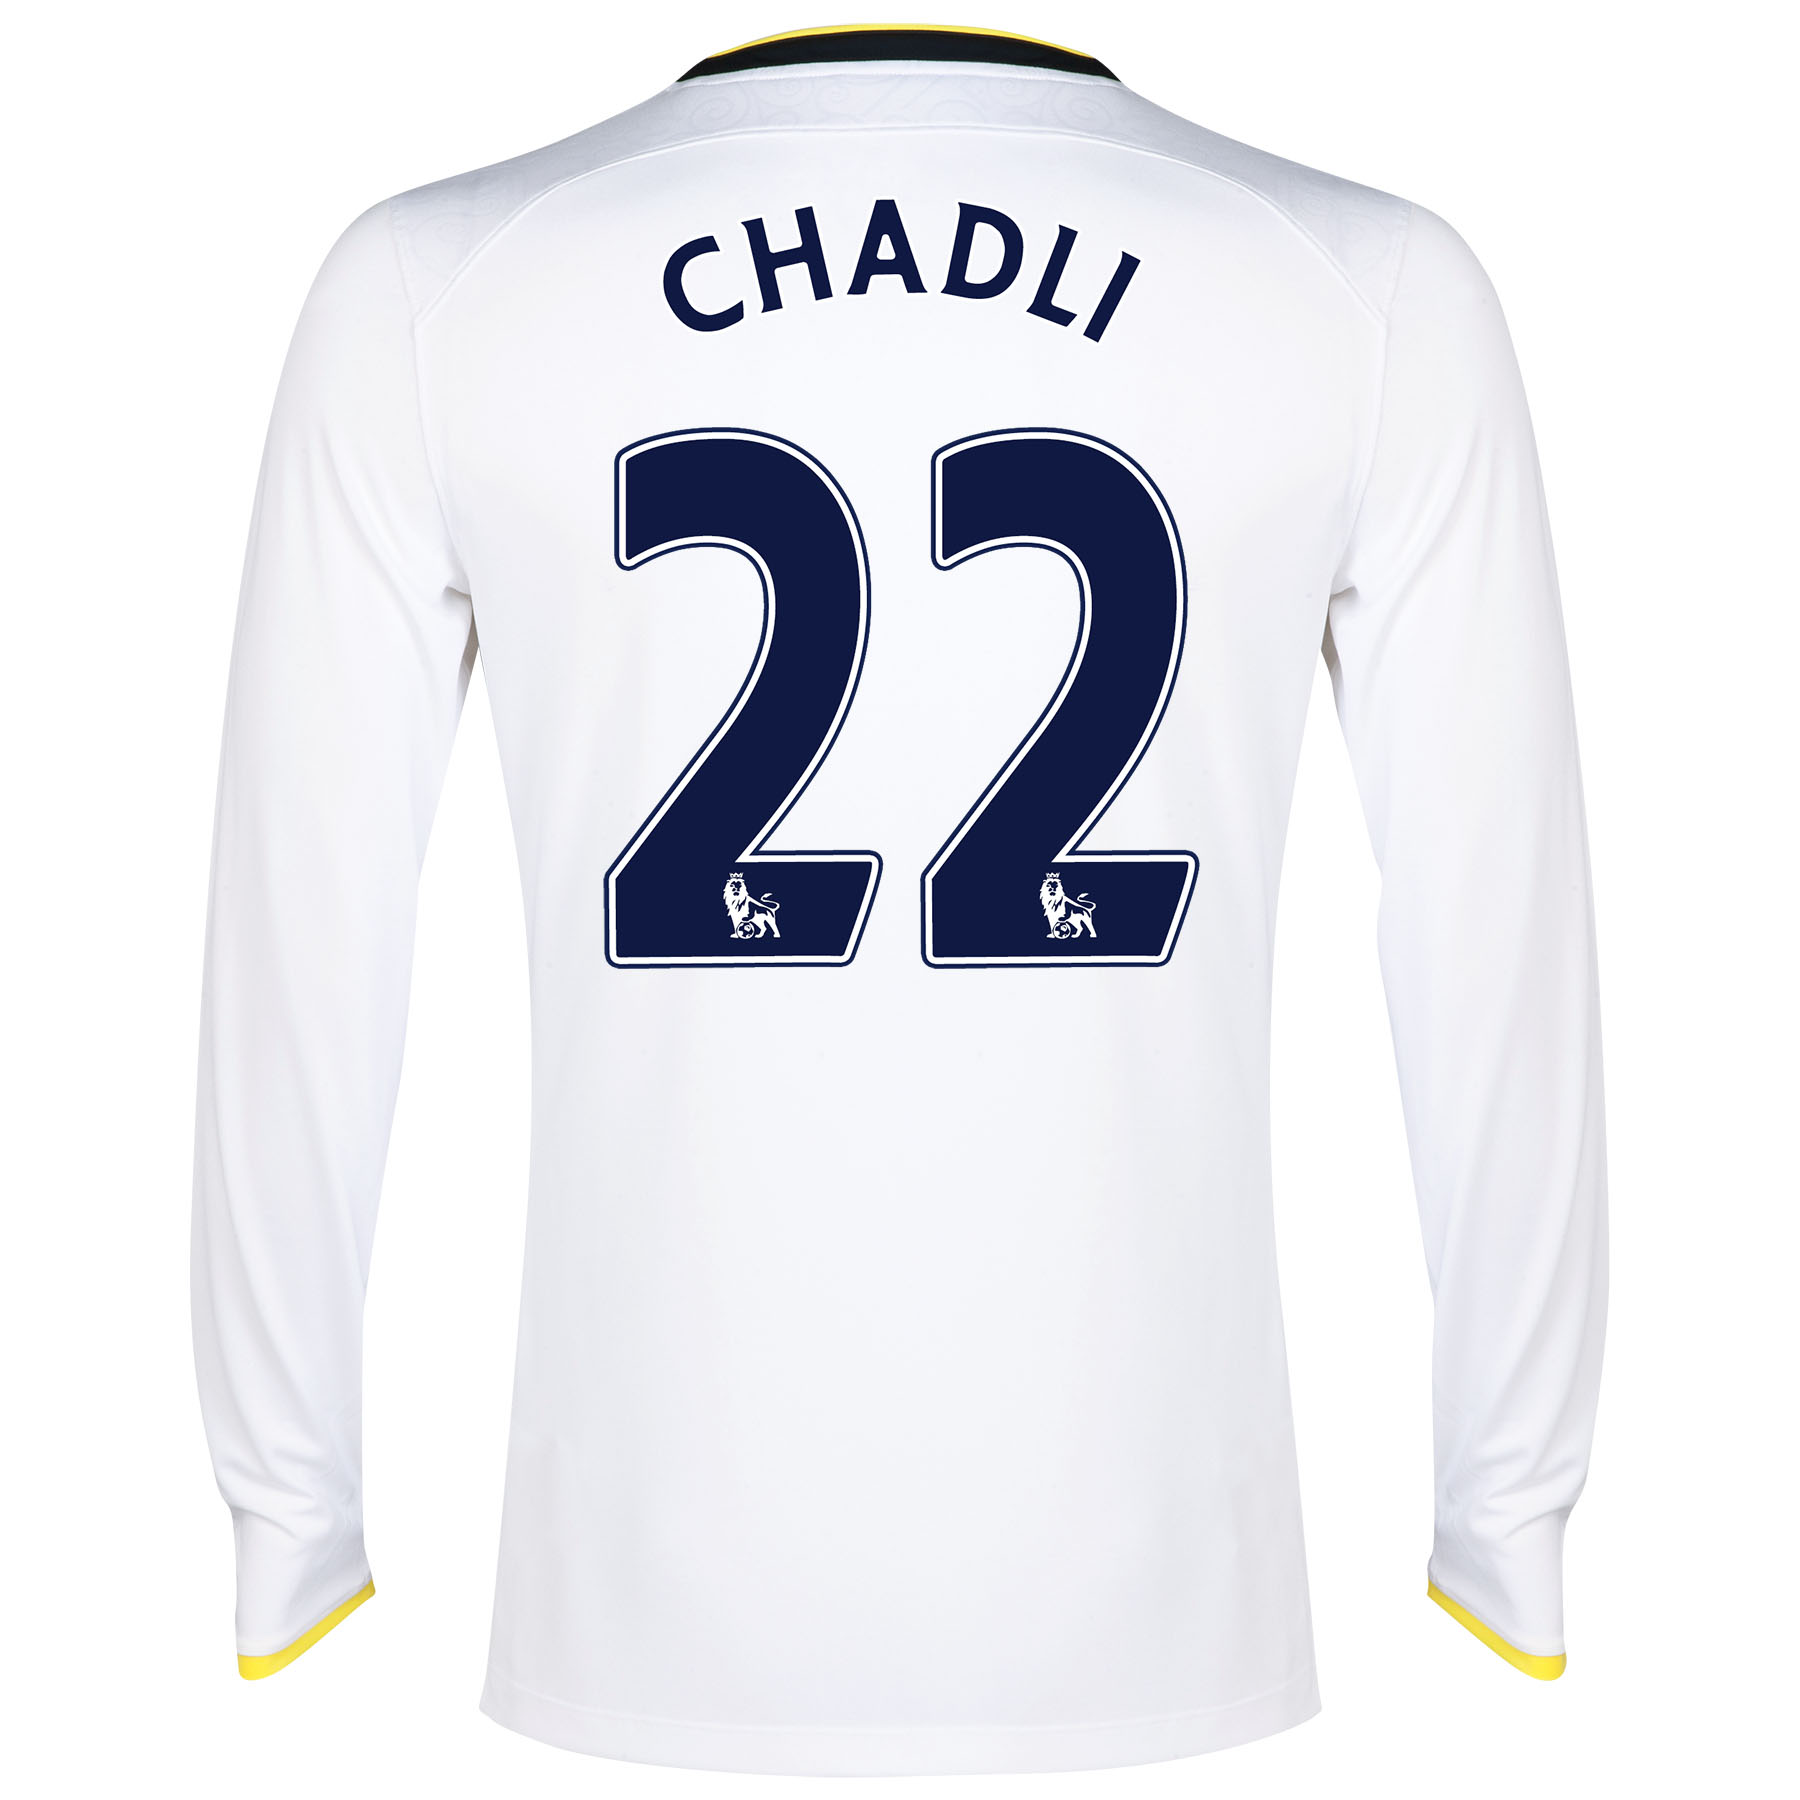 Tottenham Hotspur Home Shirt 2014/15 - Long Sleeve with Chadli 21 printing